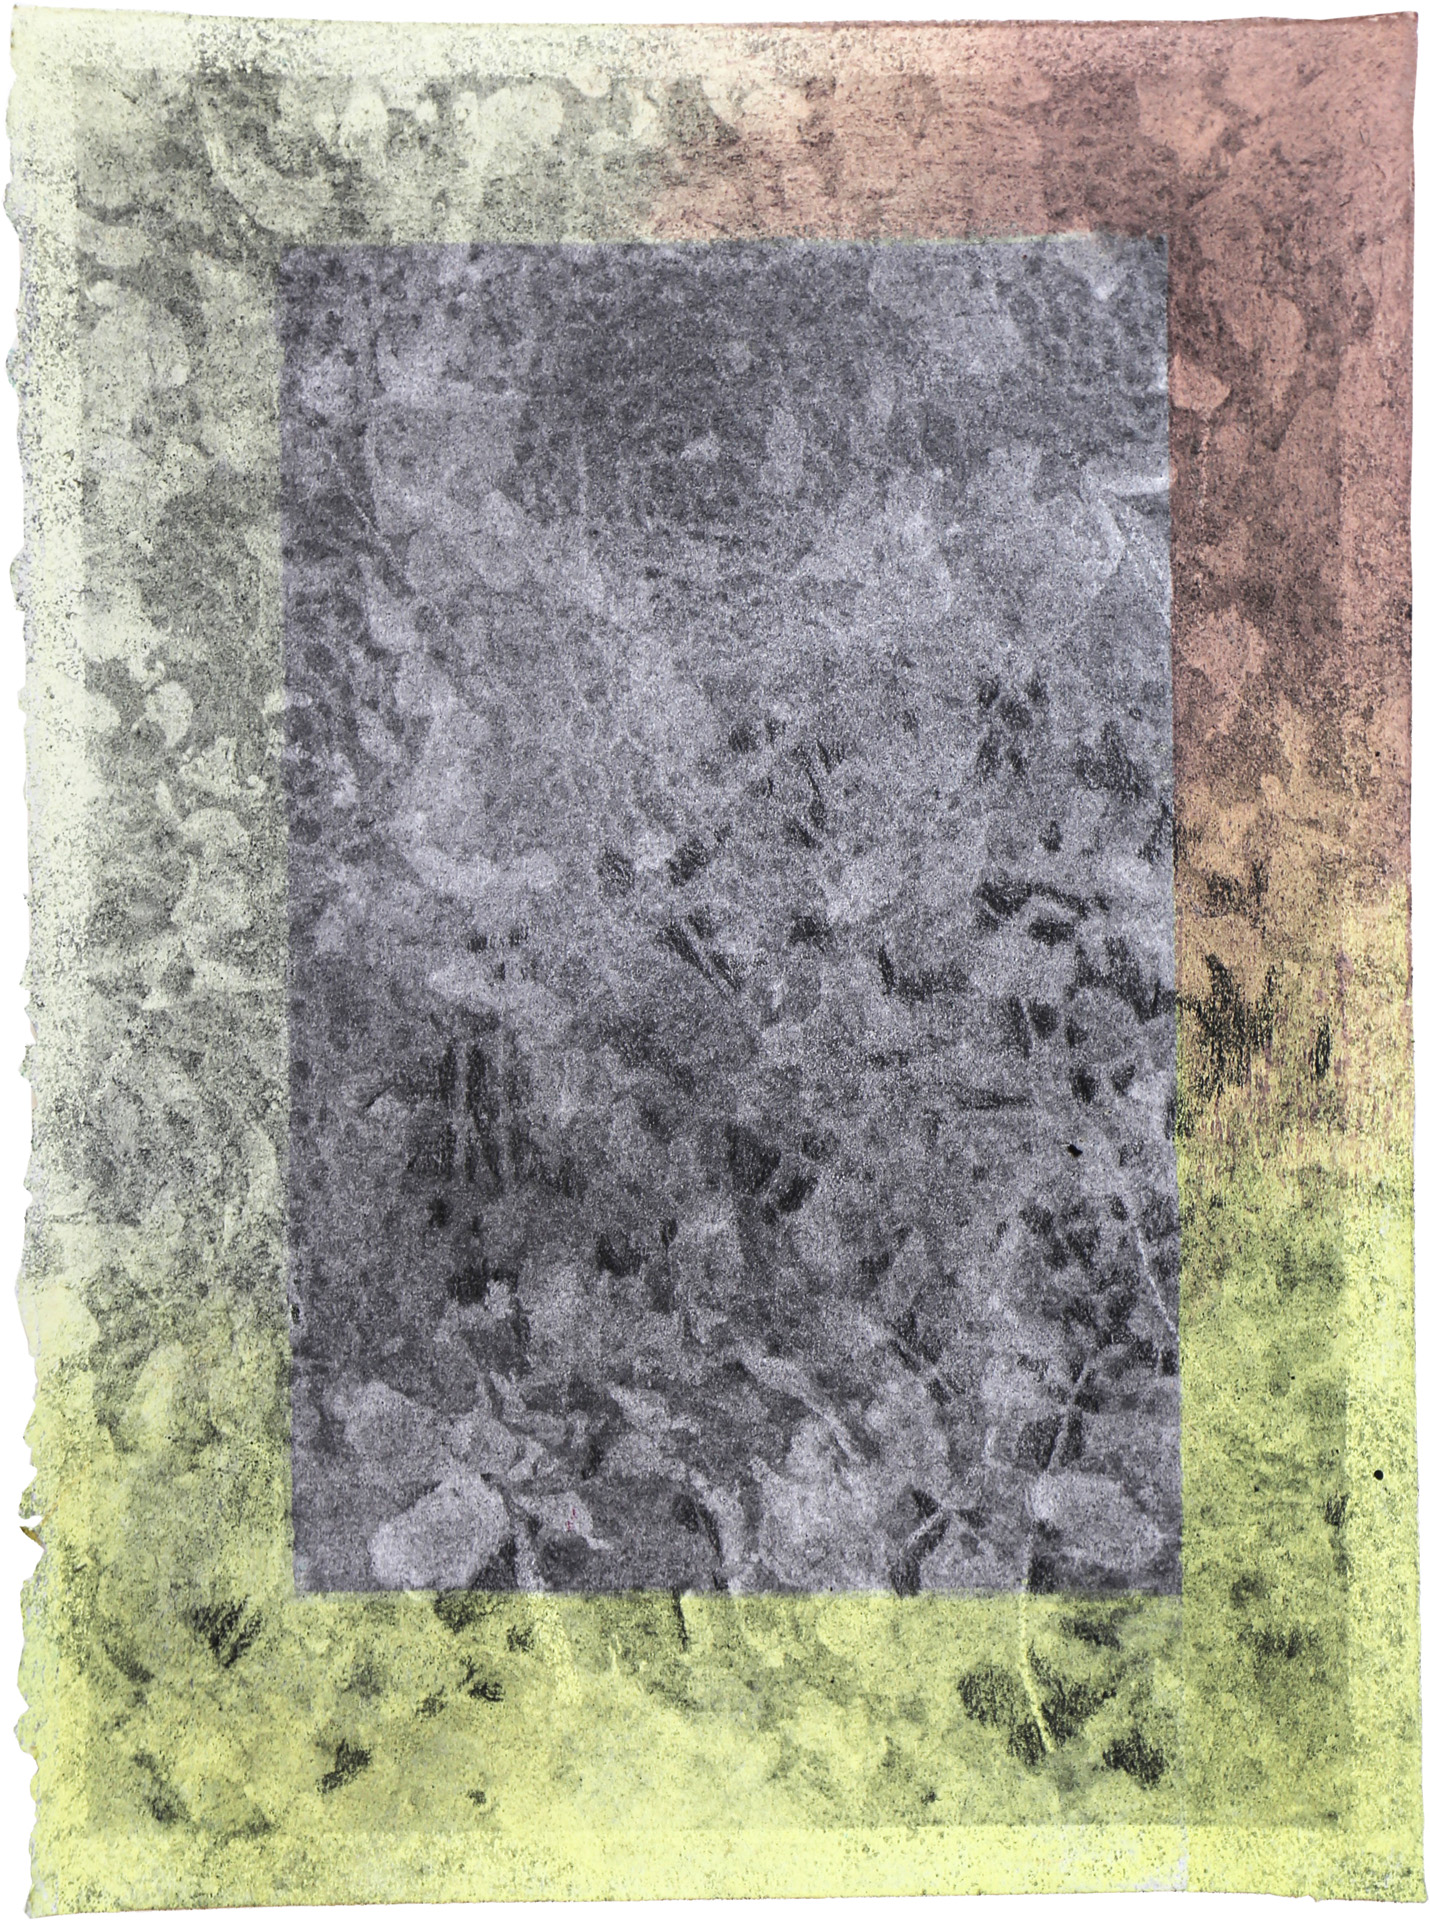 Nora Mona Bach – Einfriedung II, 2020, pastel, charcoal on paper, 39 cm x 29 cm